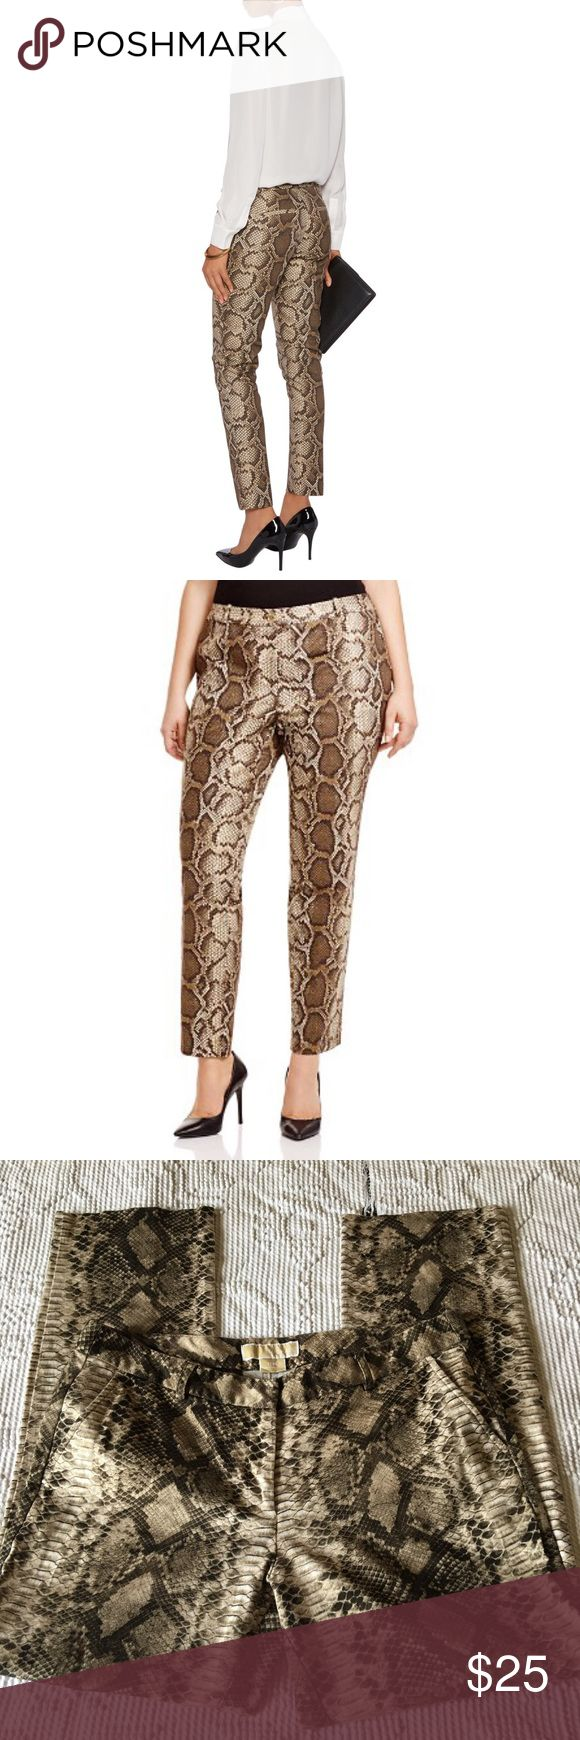 """Michael Kors Miranda Python Print Pants Open for reasonable offer. The item that you are about to purchase is a Michael Kors Miranda Python Print Pants. Size 10P. In a great condition. Inseam is 26"""". To make an offer, please use """"offer"""" Button. Thank you! MICHAEL Michael Kors Pants Ankle & Cropped"""